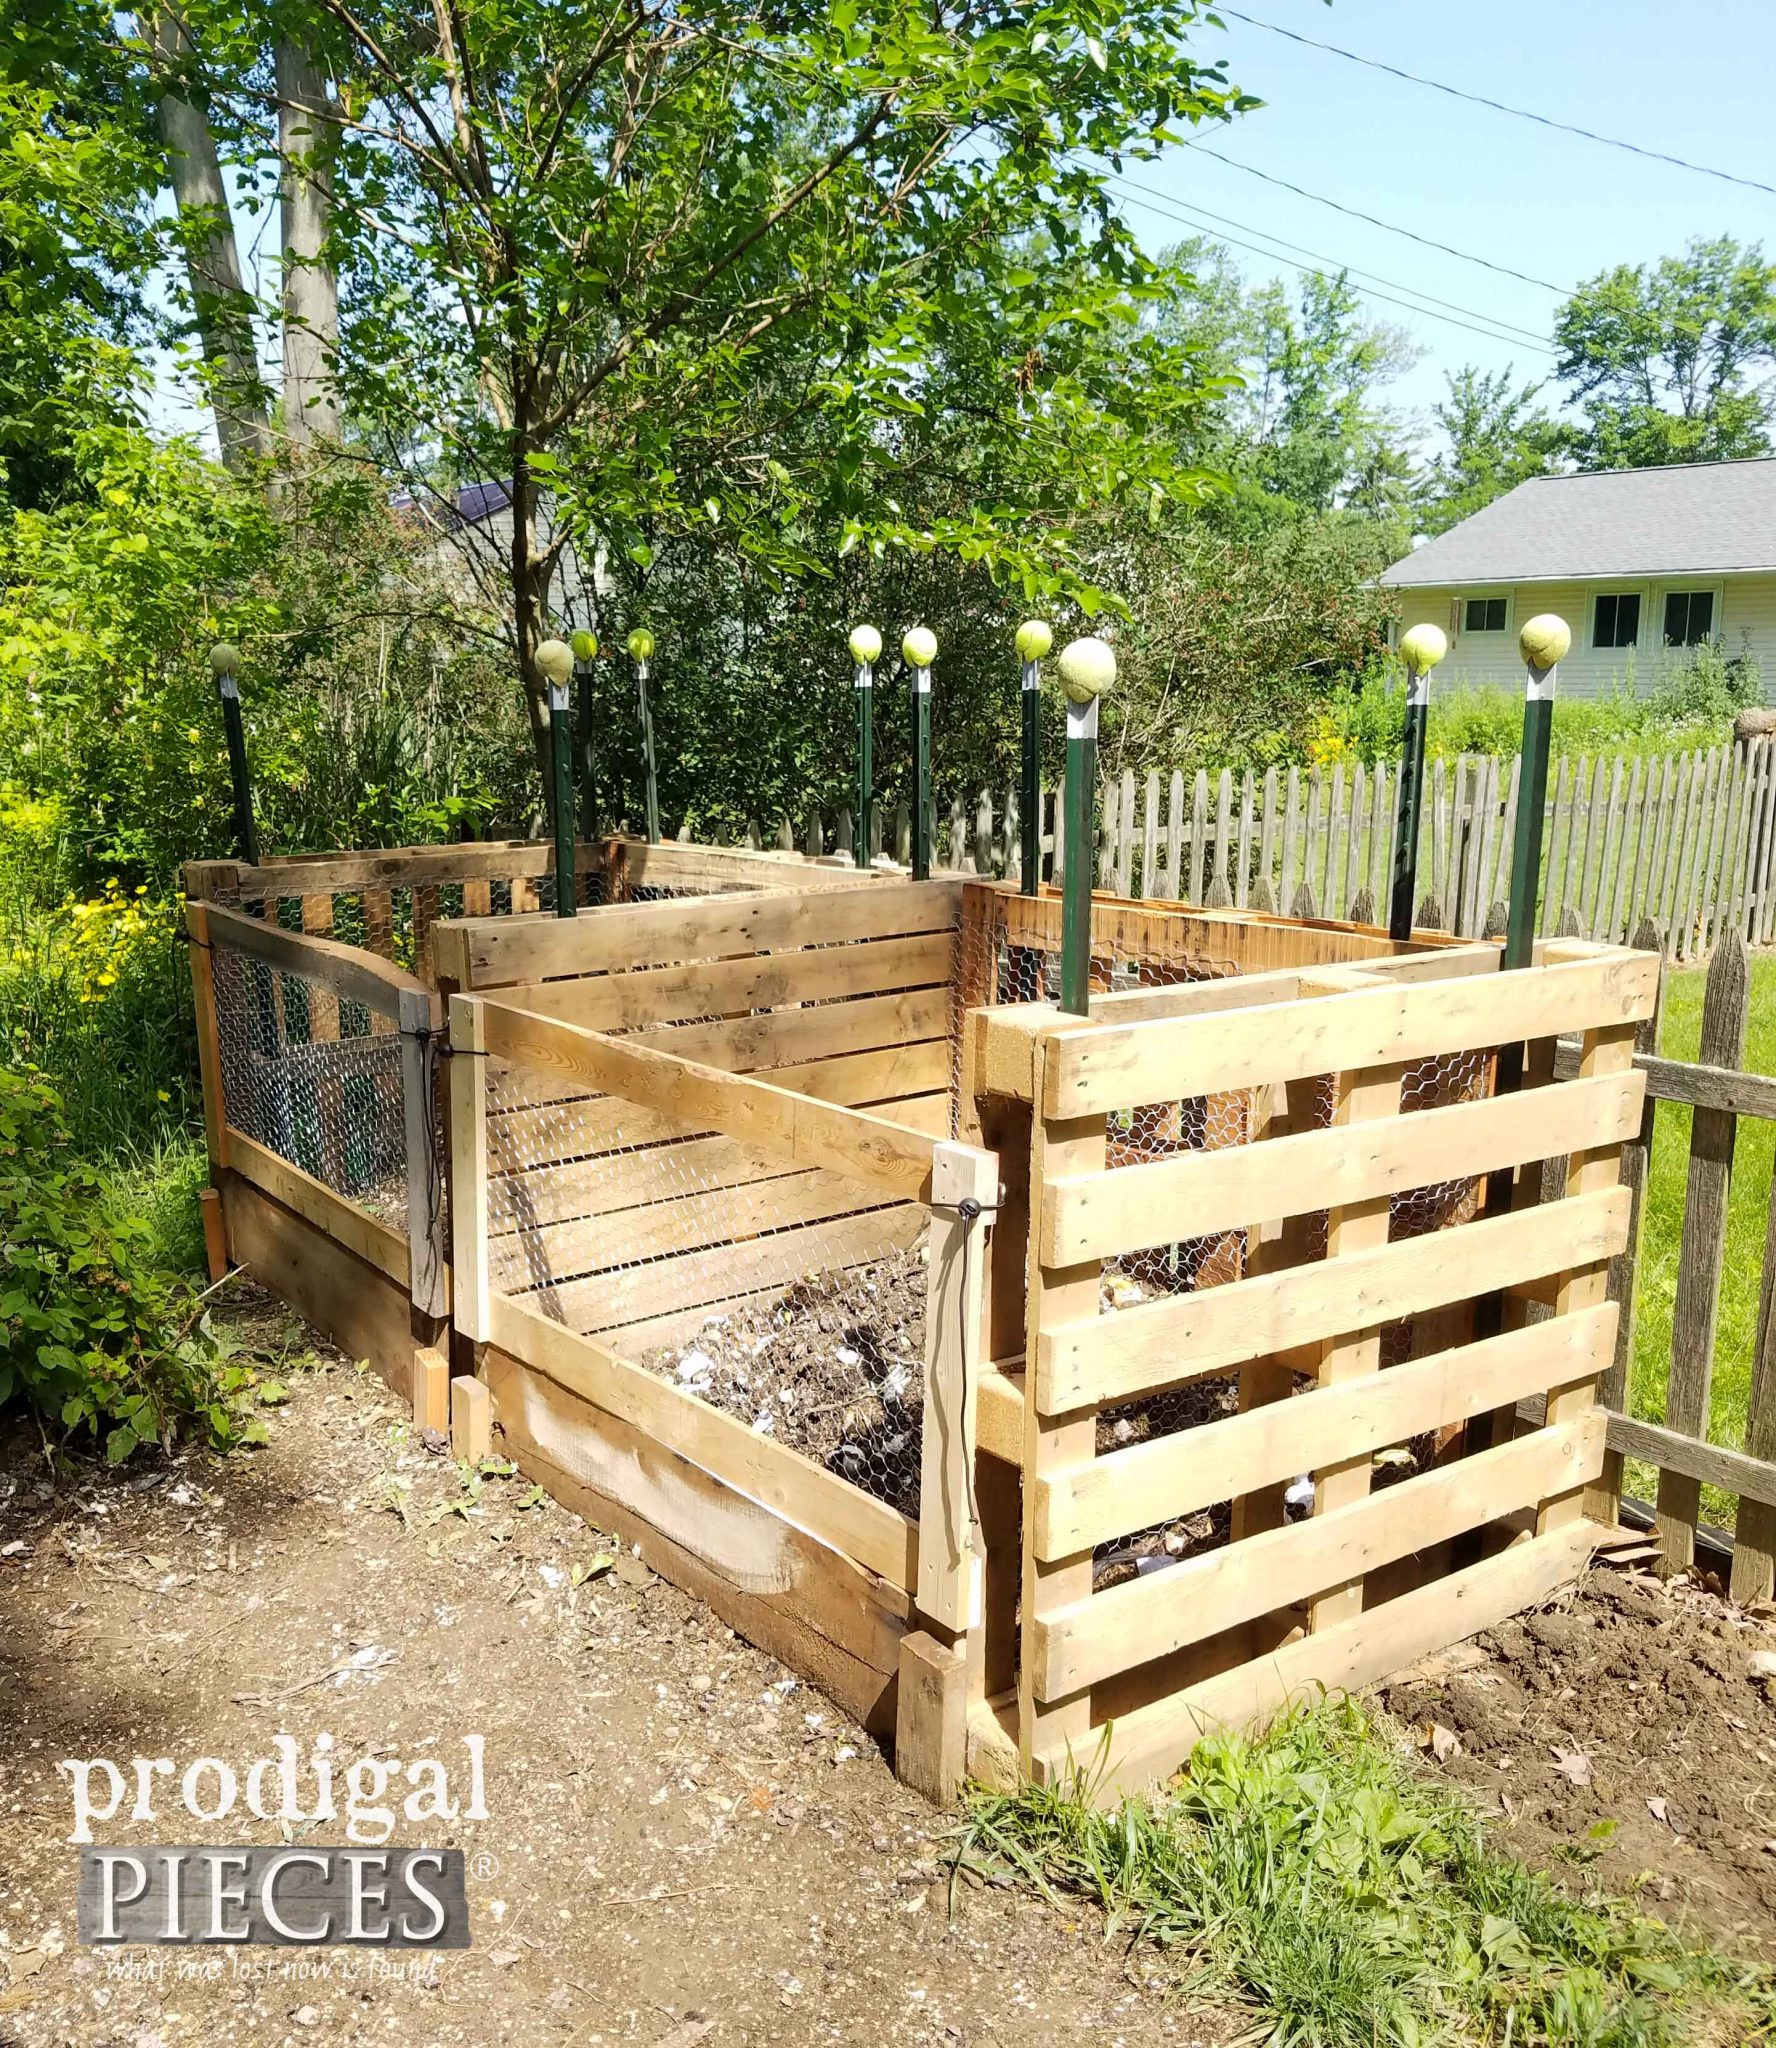 Best ideas about Compost Bin DIY . Save or Pin Pallet post Bin DIY A Must Have Prodigal Pieces Now.